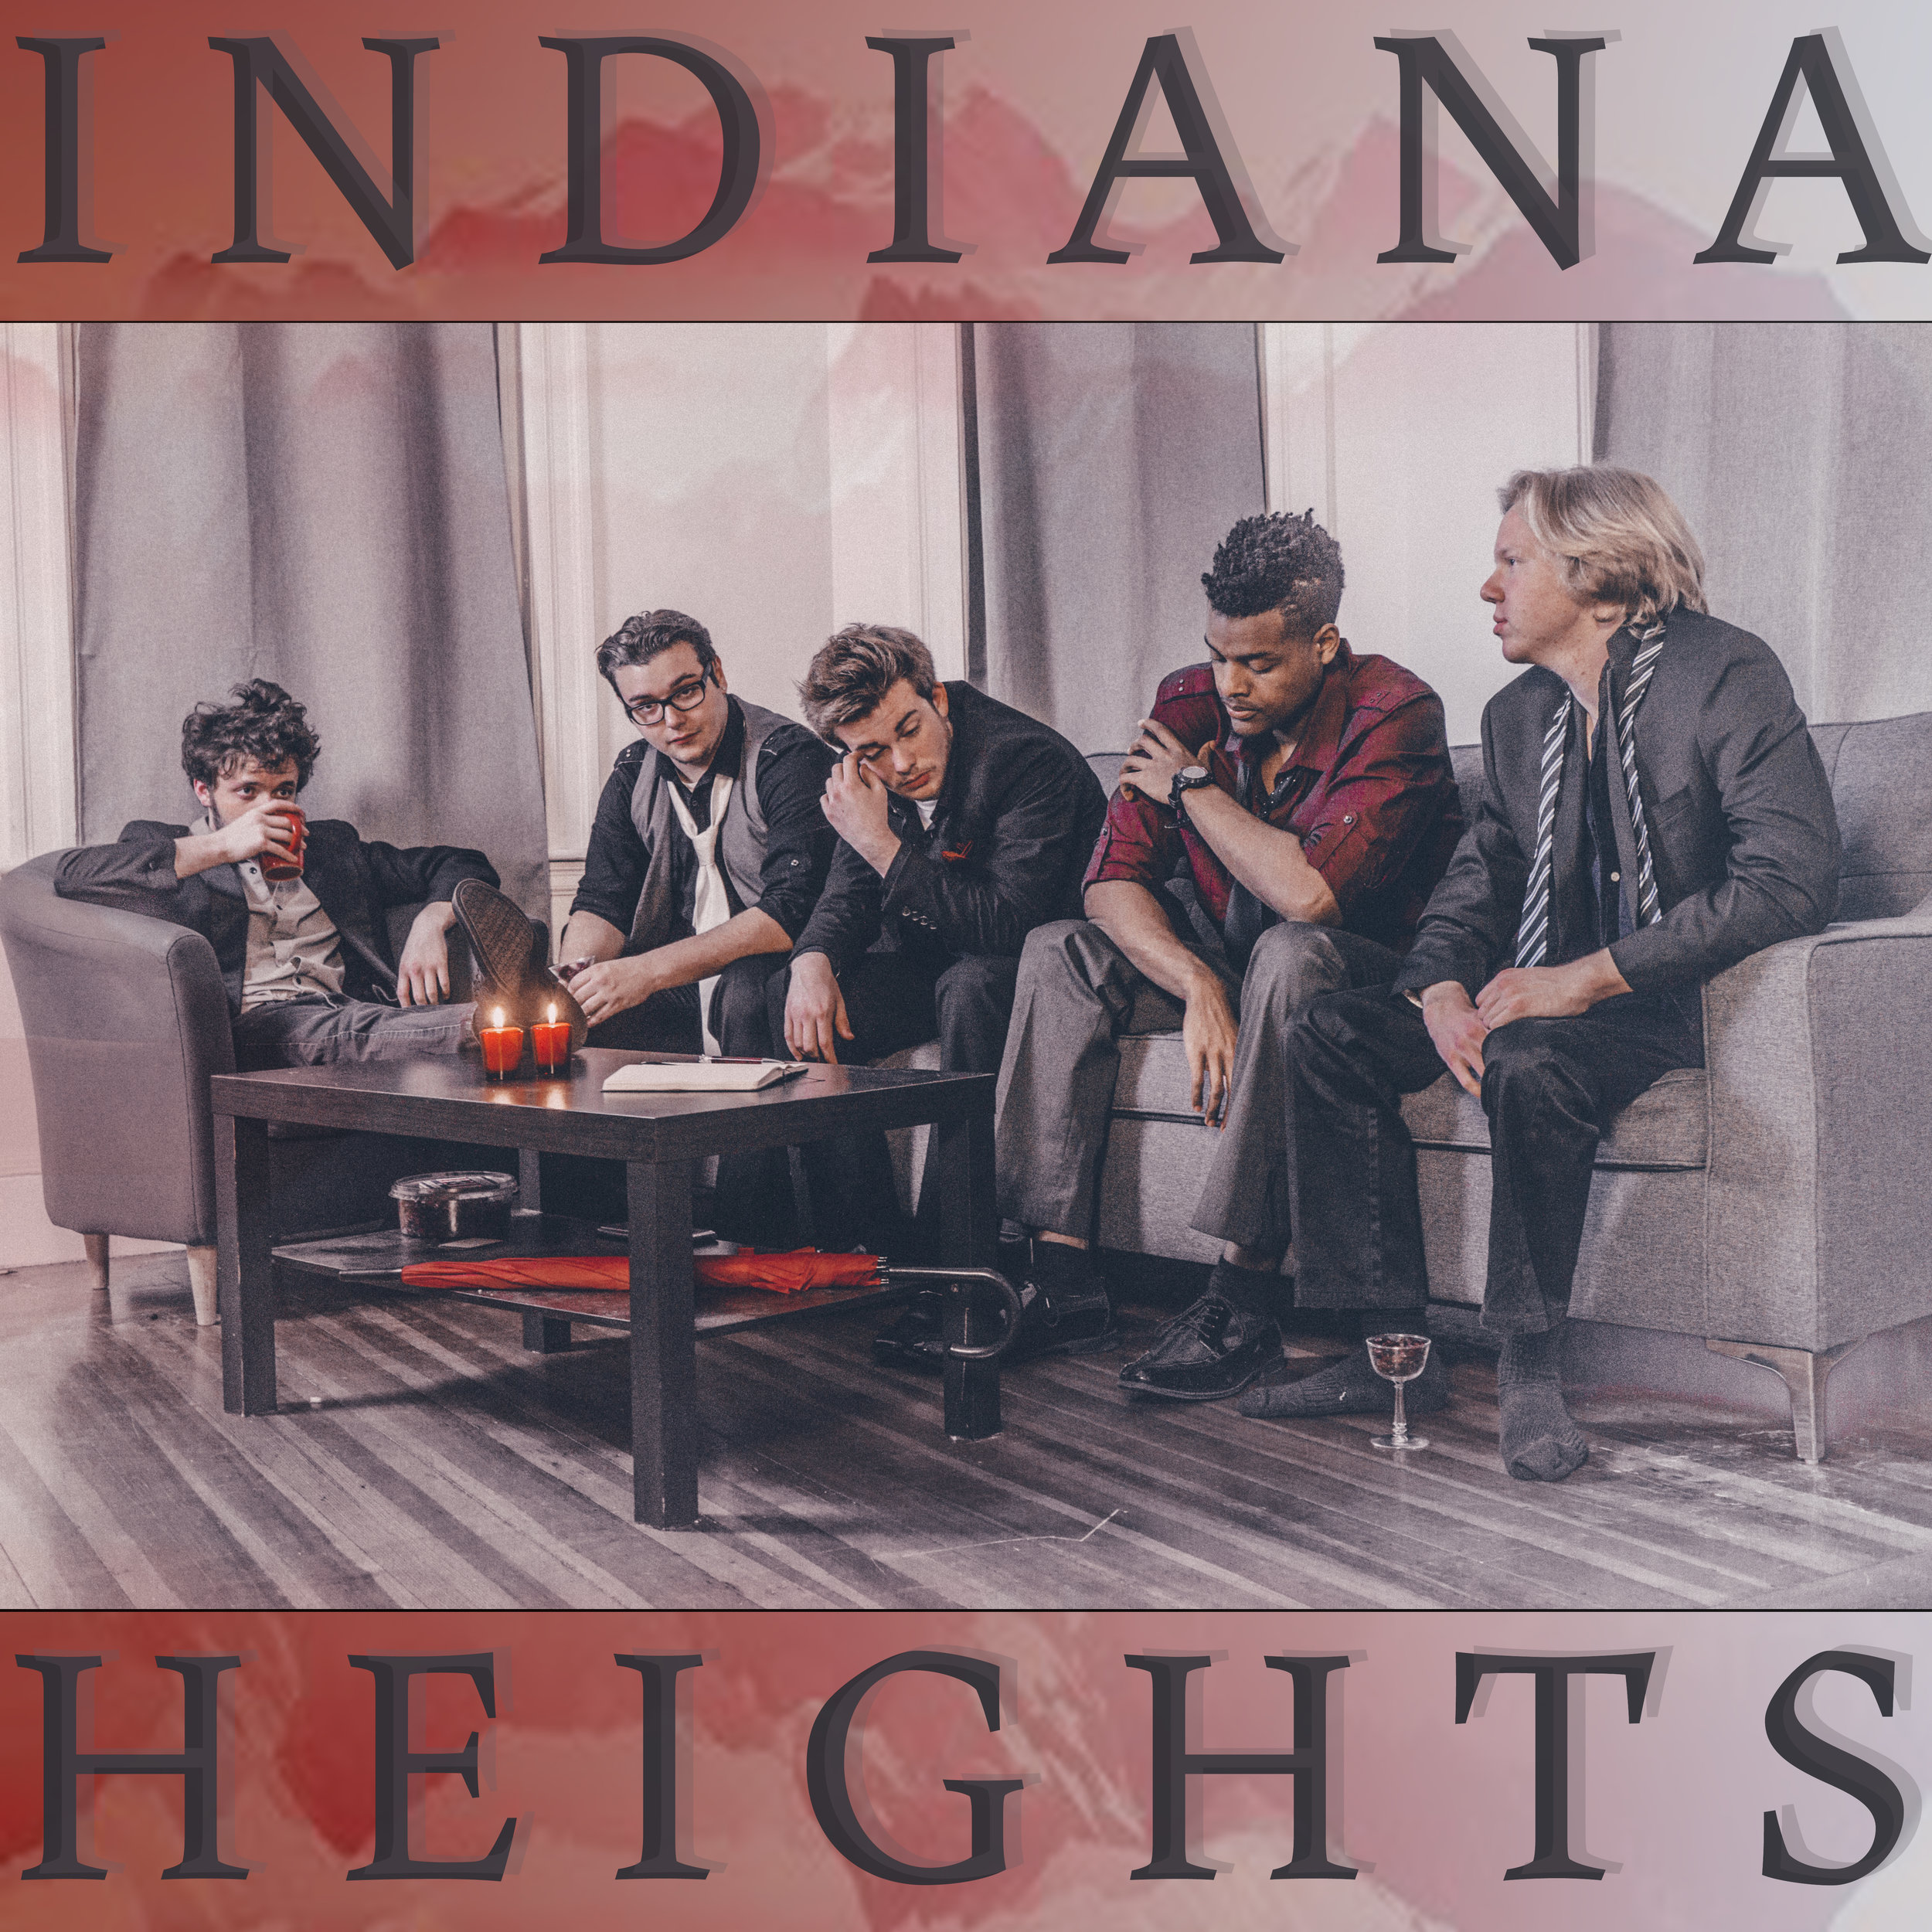 Band Promo/Album Covers - -hourly rate for shooting + flat fee per image file-flat fee for cover designThis is the cover of Indiana Heights' self titled album.Image & cover design by Holy Smoke Photography.